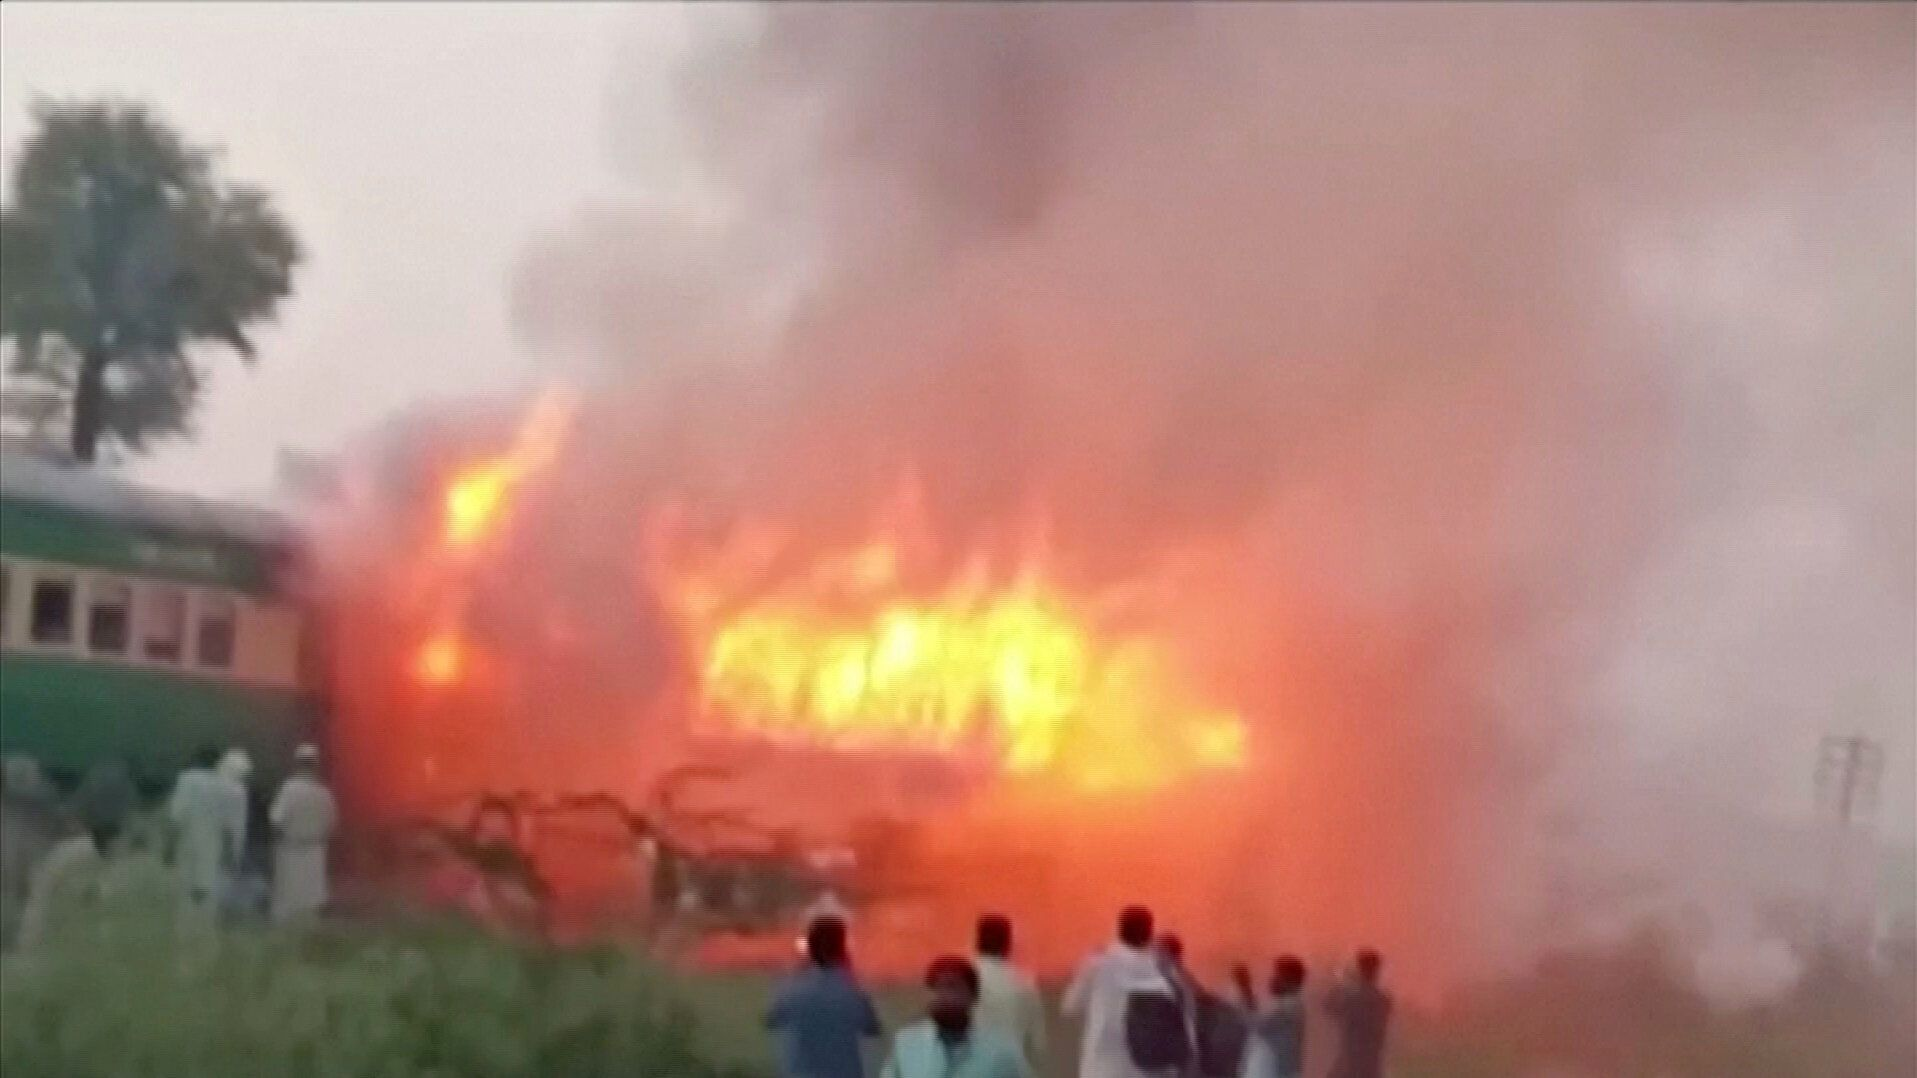 Dozens of passengers perished in the blaze.